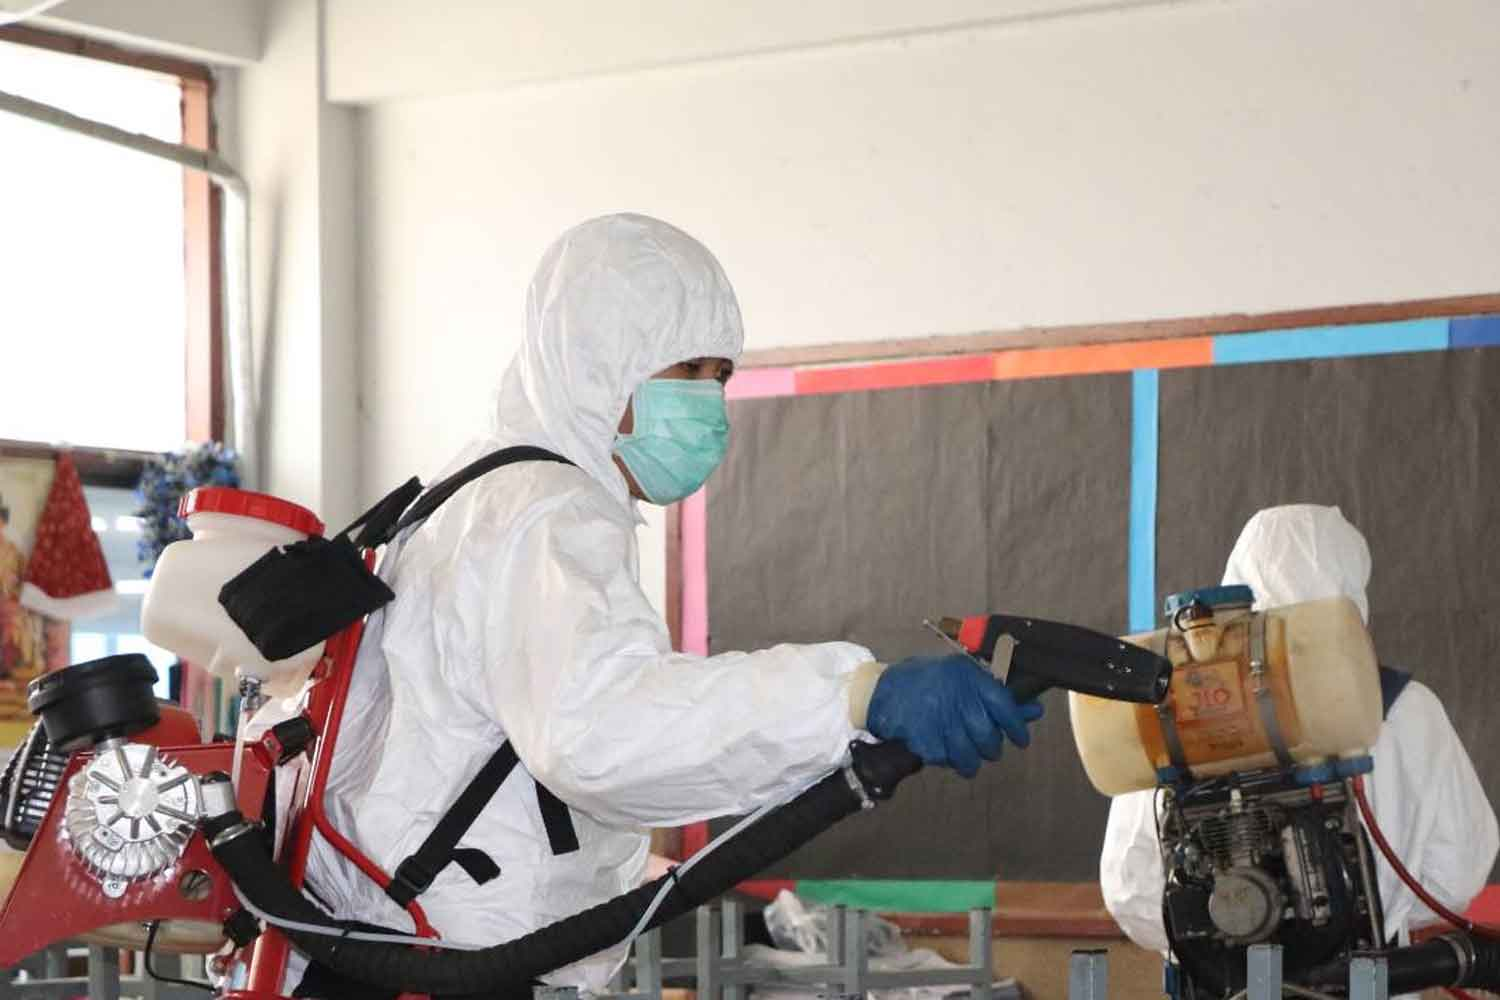 Health officials disinfect a classroom at Phraharuthai Donmuang School on Song Prapha Road in Don Muang district, Bangkok, on Wednesday. The school was closed because a pupil contracted the novel coronavirus. (Photo by Don Muang district office)